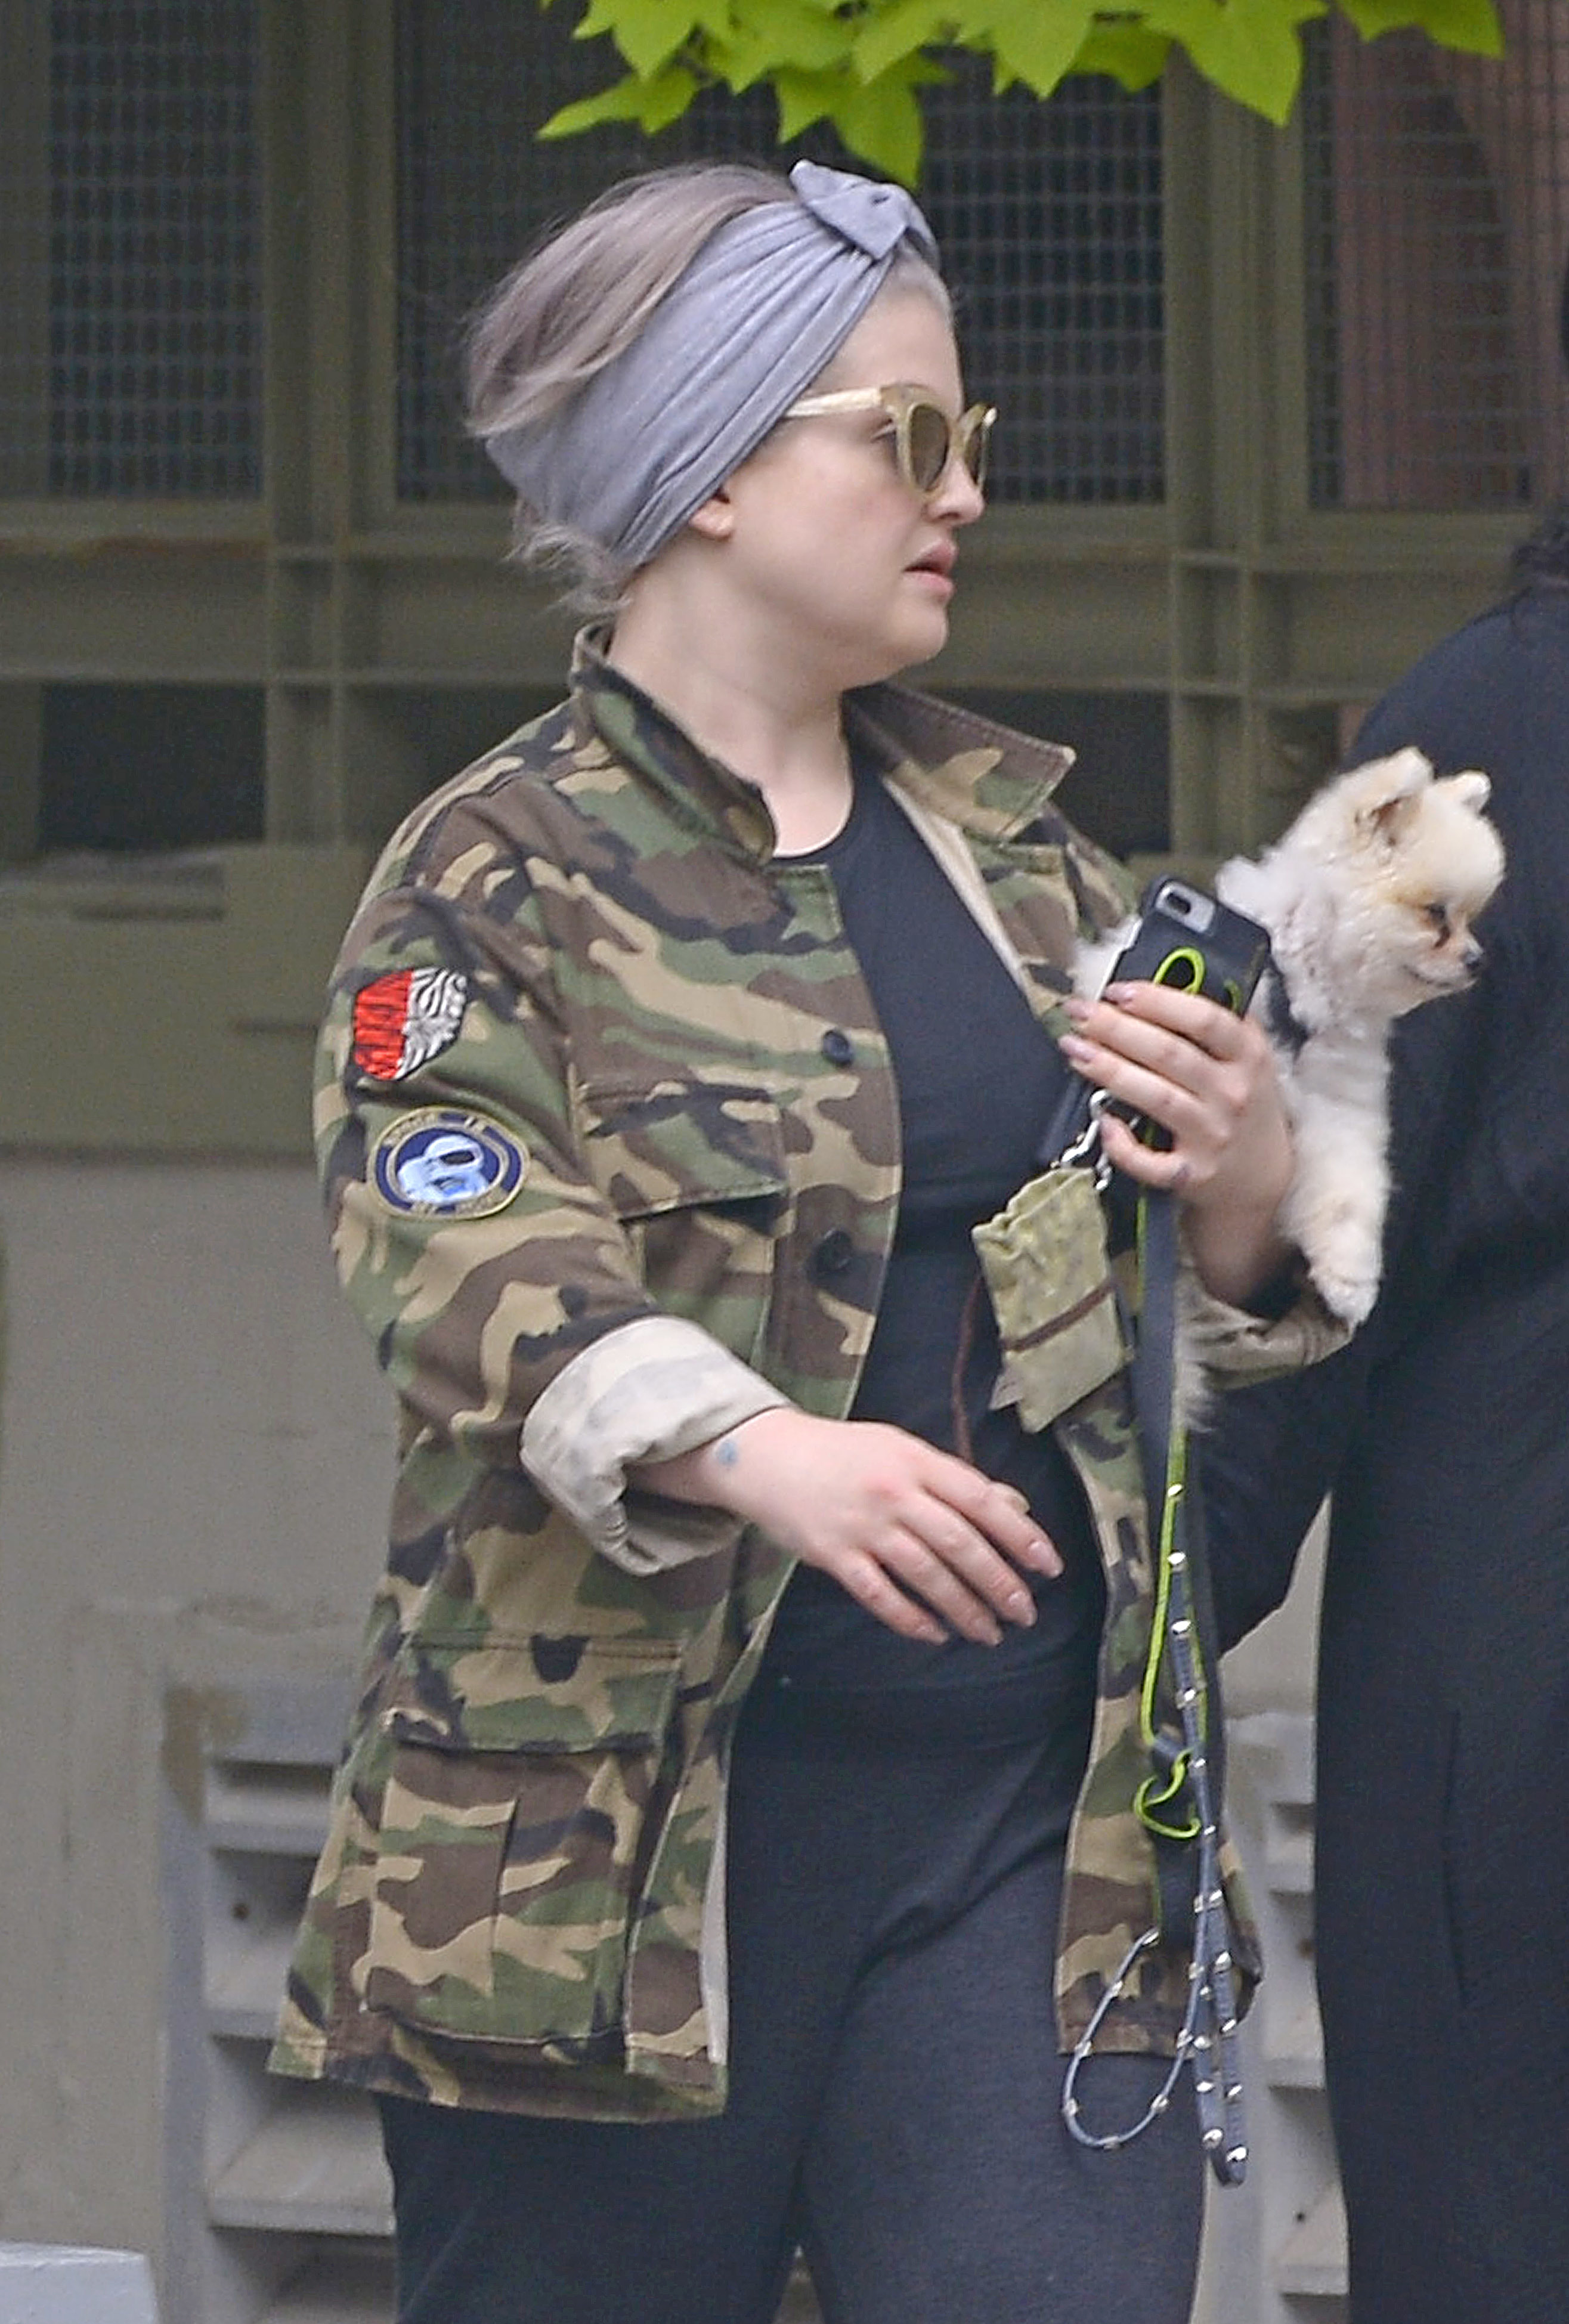 Kelly Osbourne carried her pooch while walking with her stylist friend in New York City on Oct. 1, 2018.